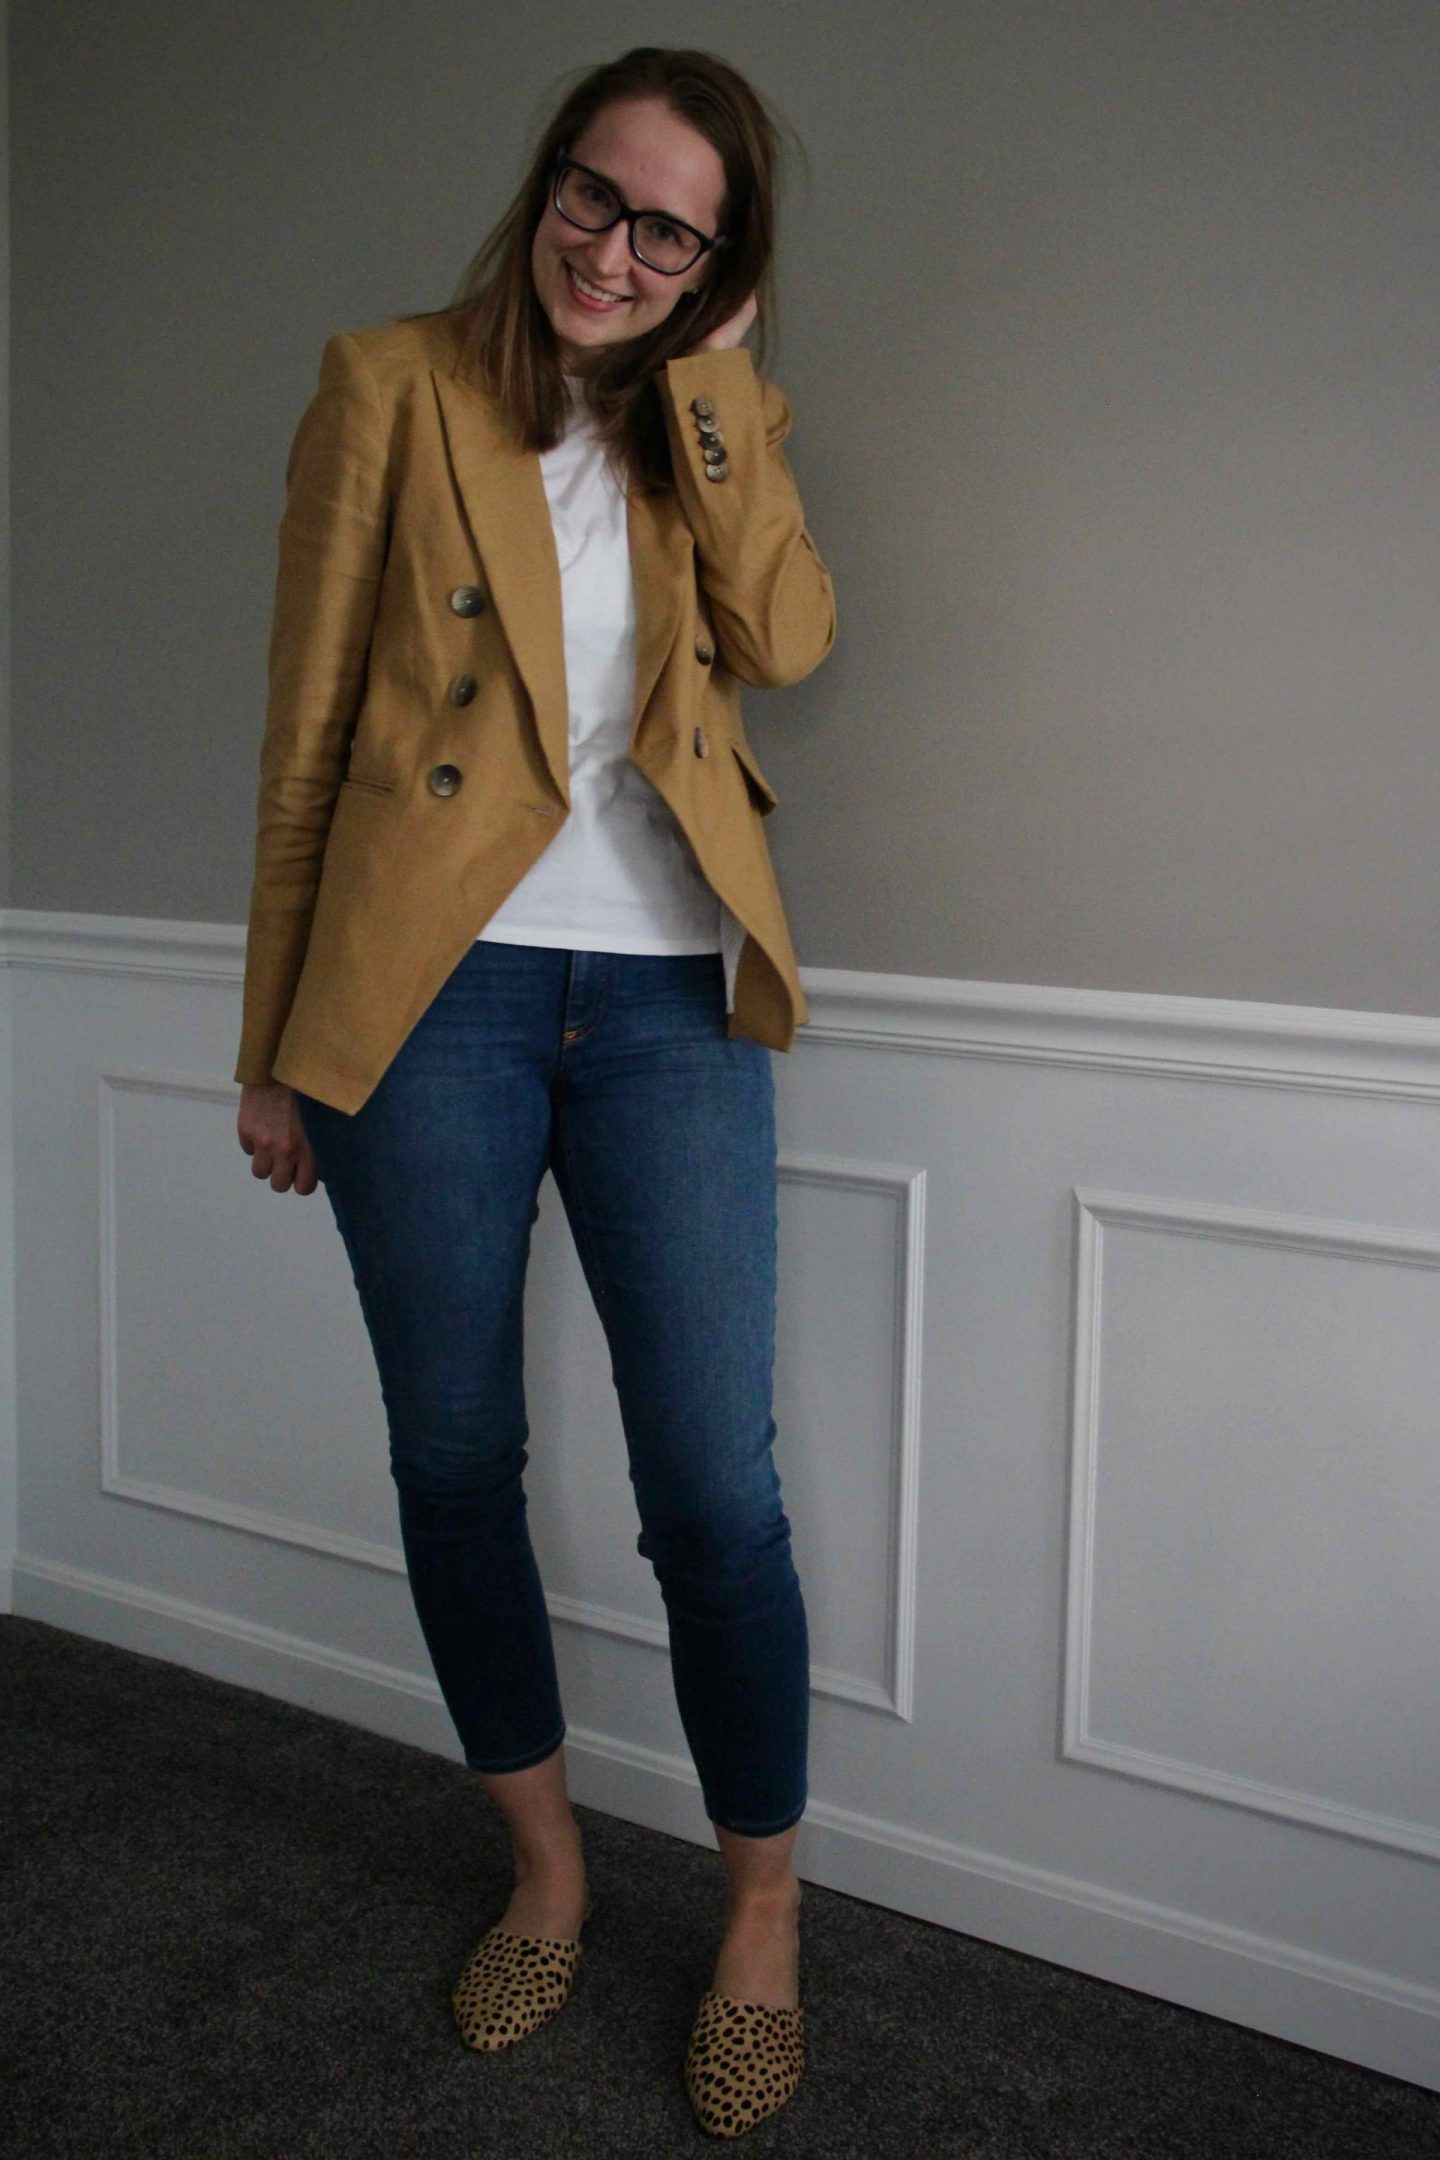 The Perfect Casual Work Outfit Idea | Veronica Beard Blazer | The Spectacular Adventurer